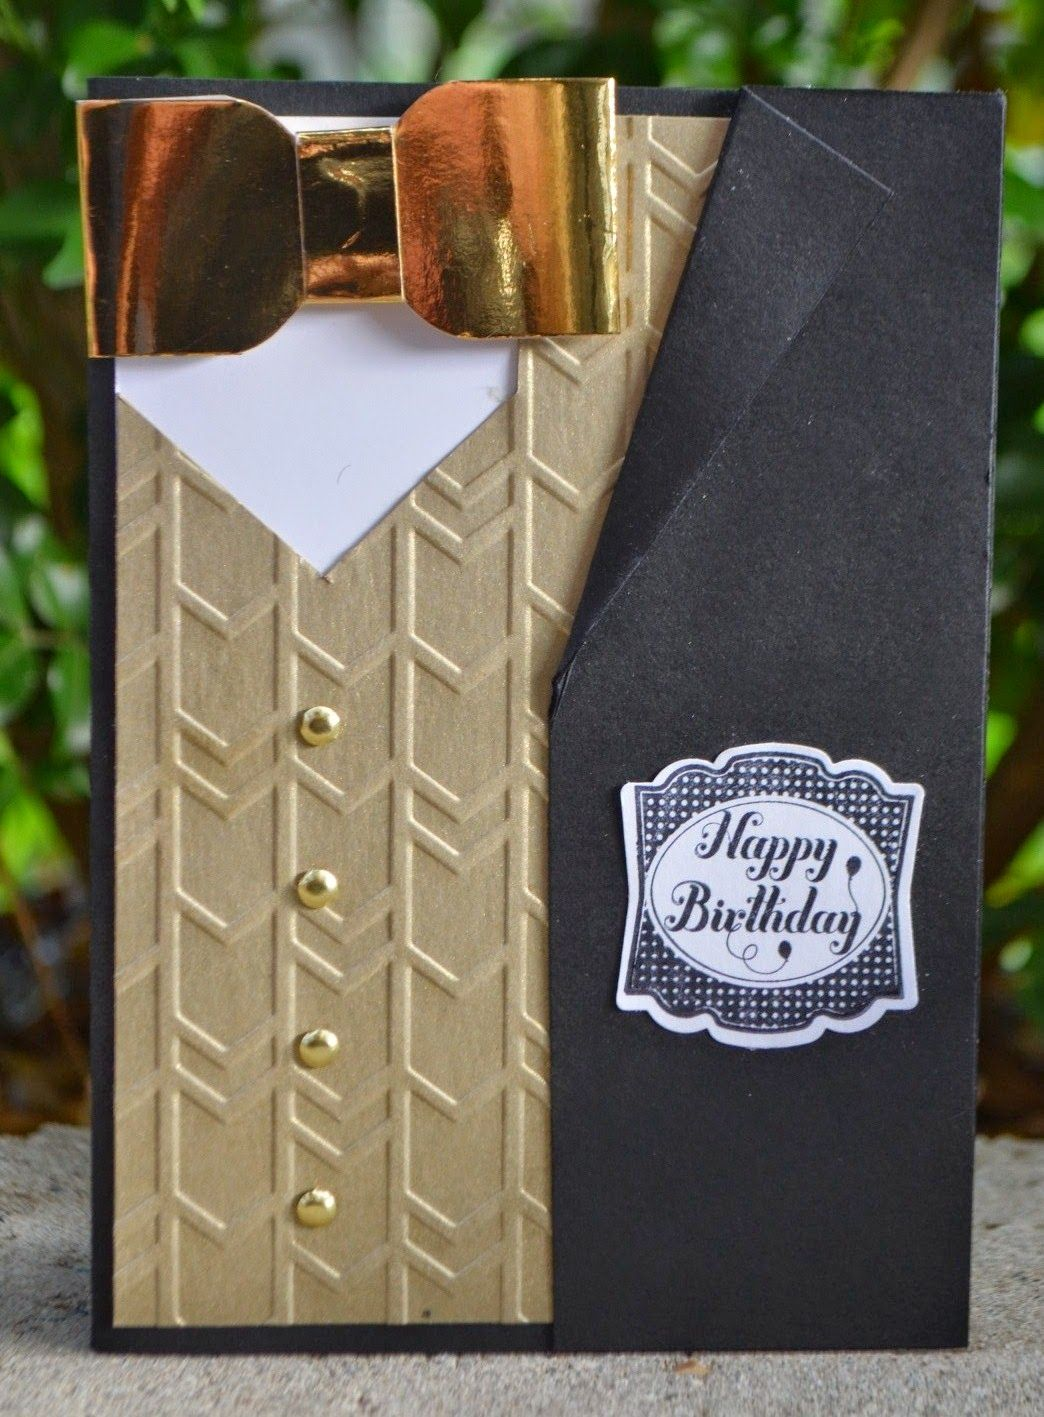 Happy birthday card by christie kunkel its your birthday fancy male birthday card stampin up envelope punch board label something arrows embossing folder bookmarktalkfo Gallery